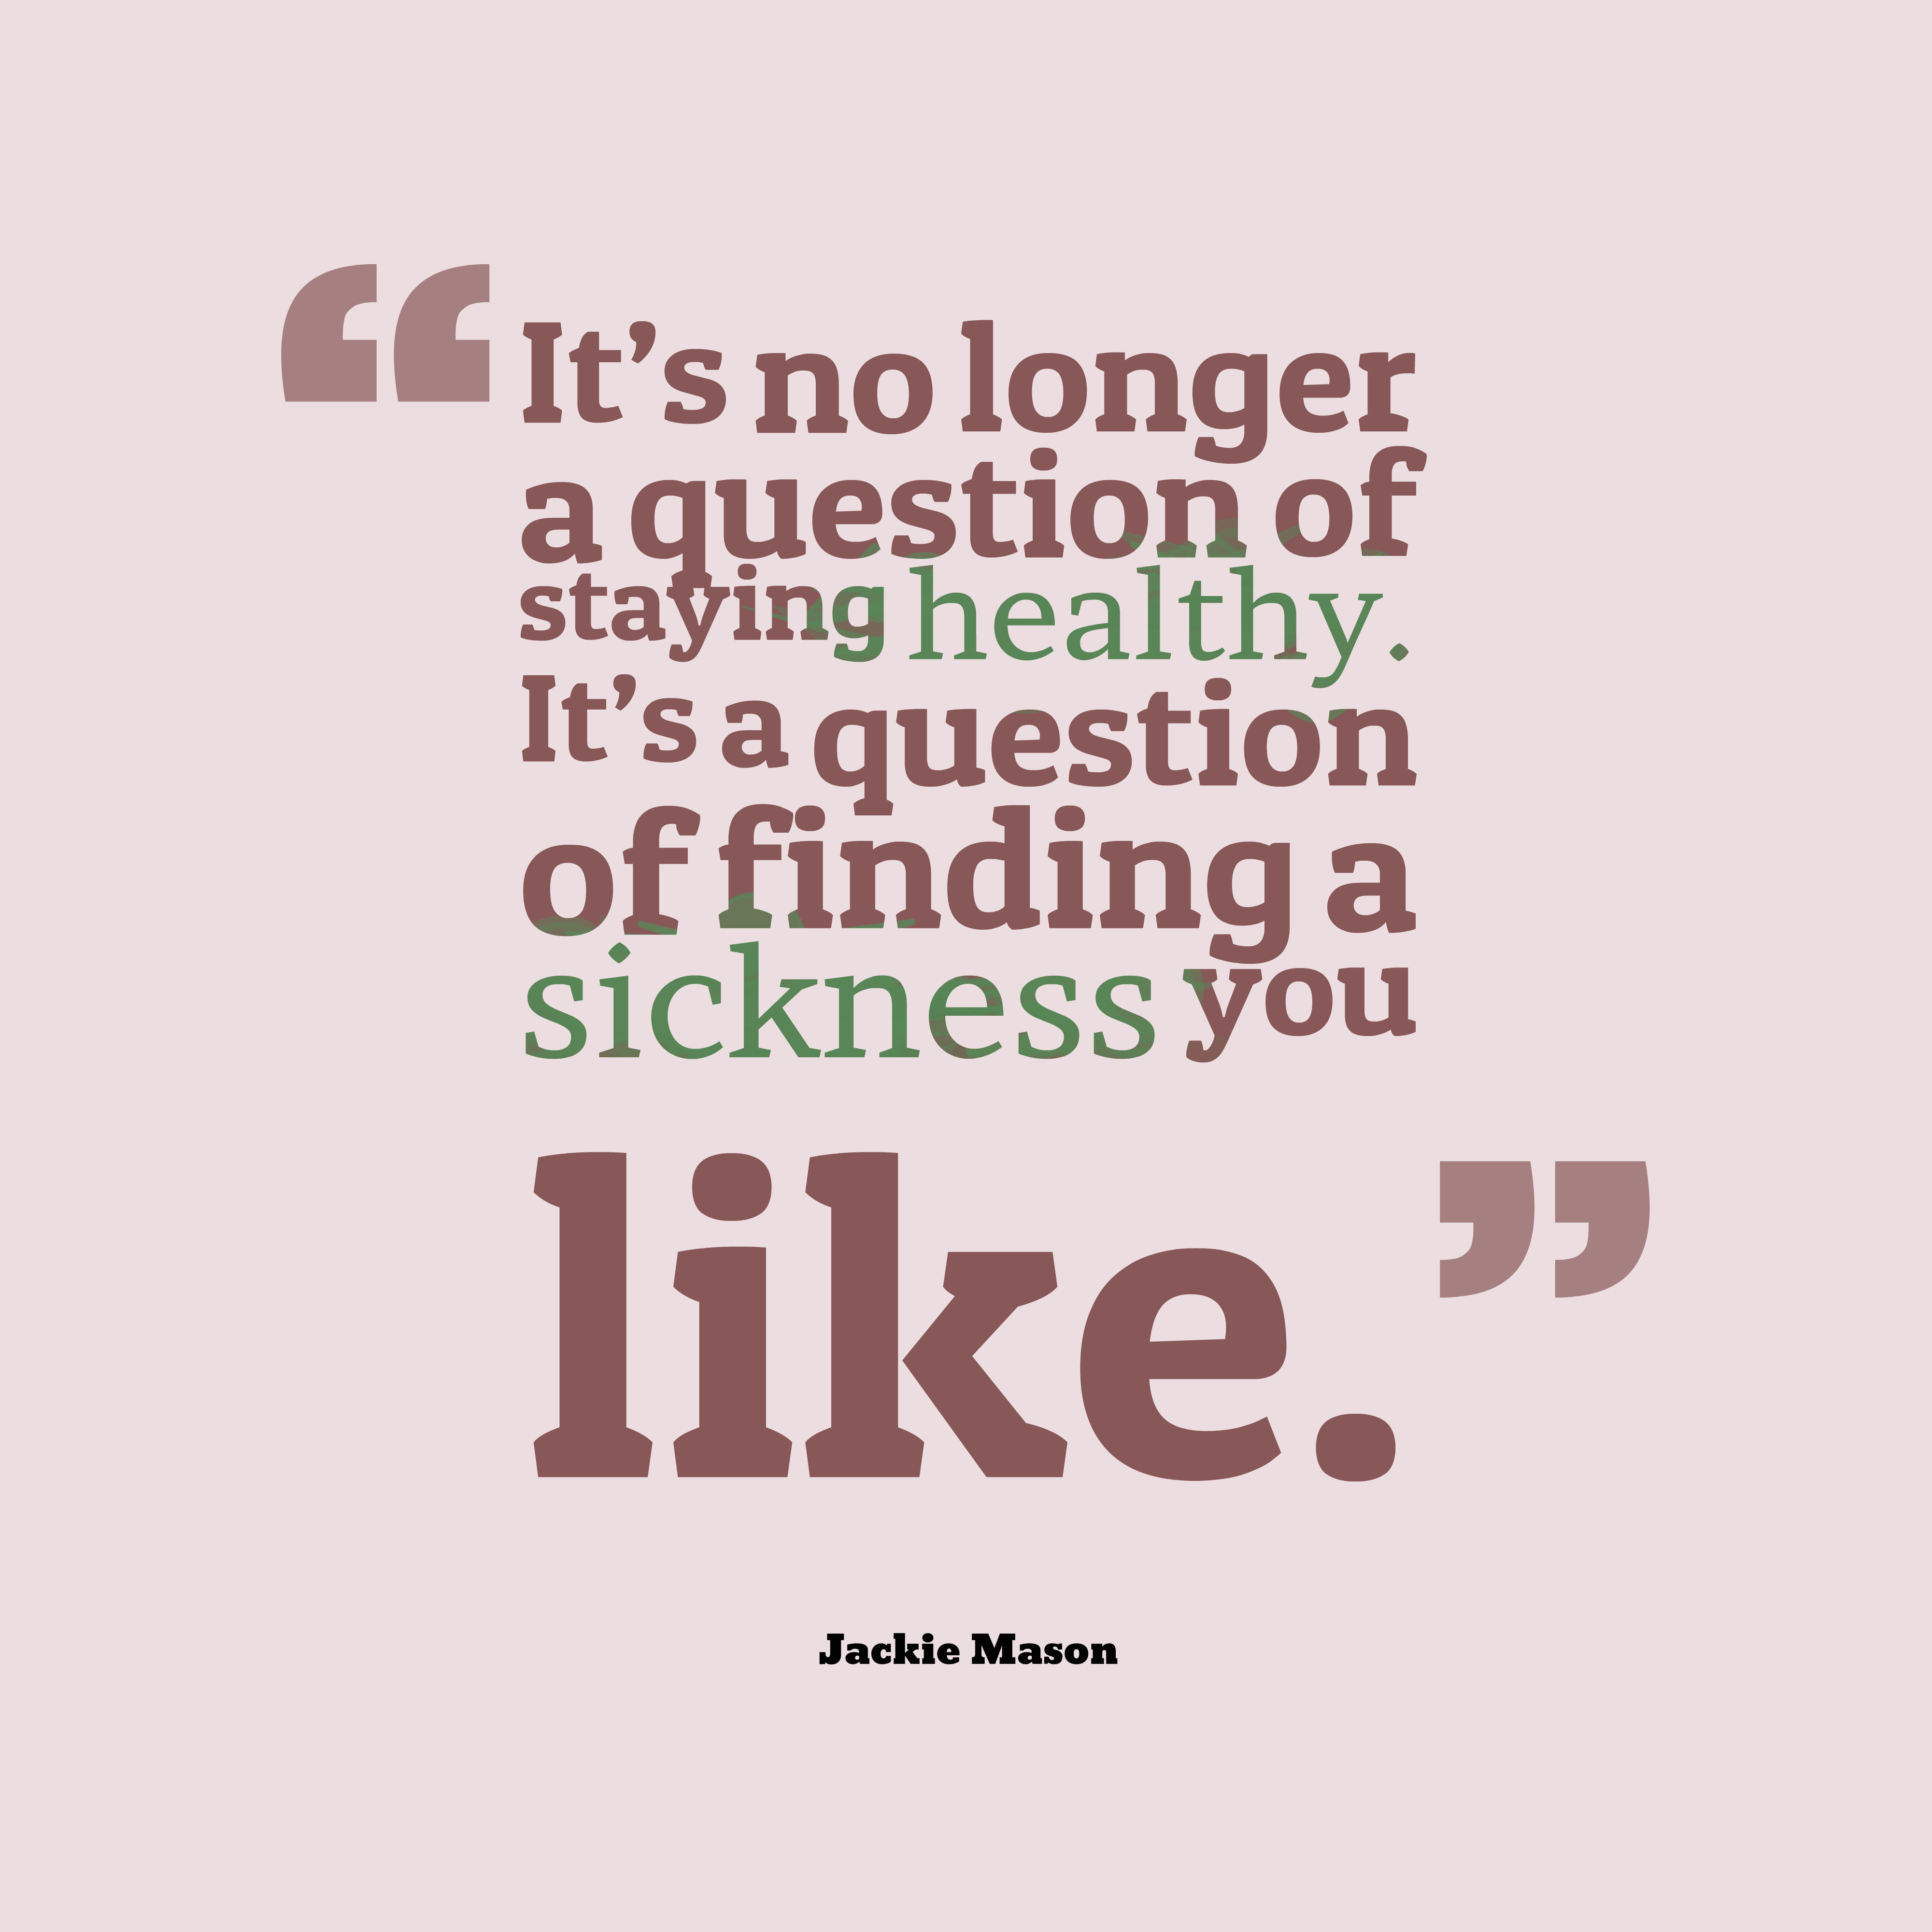 Quotes image of It's no longer a question of staying healthy. It's a question of finding a sickness you like.